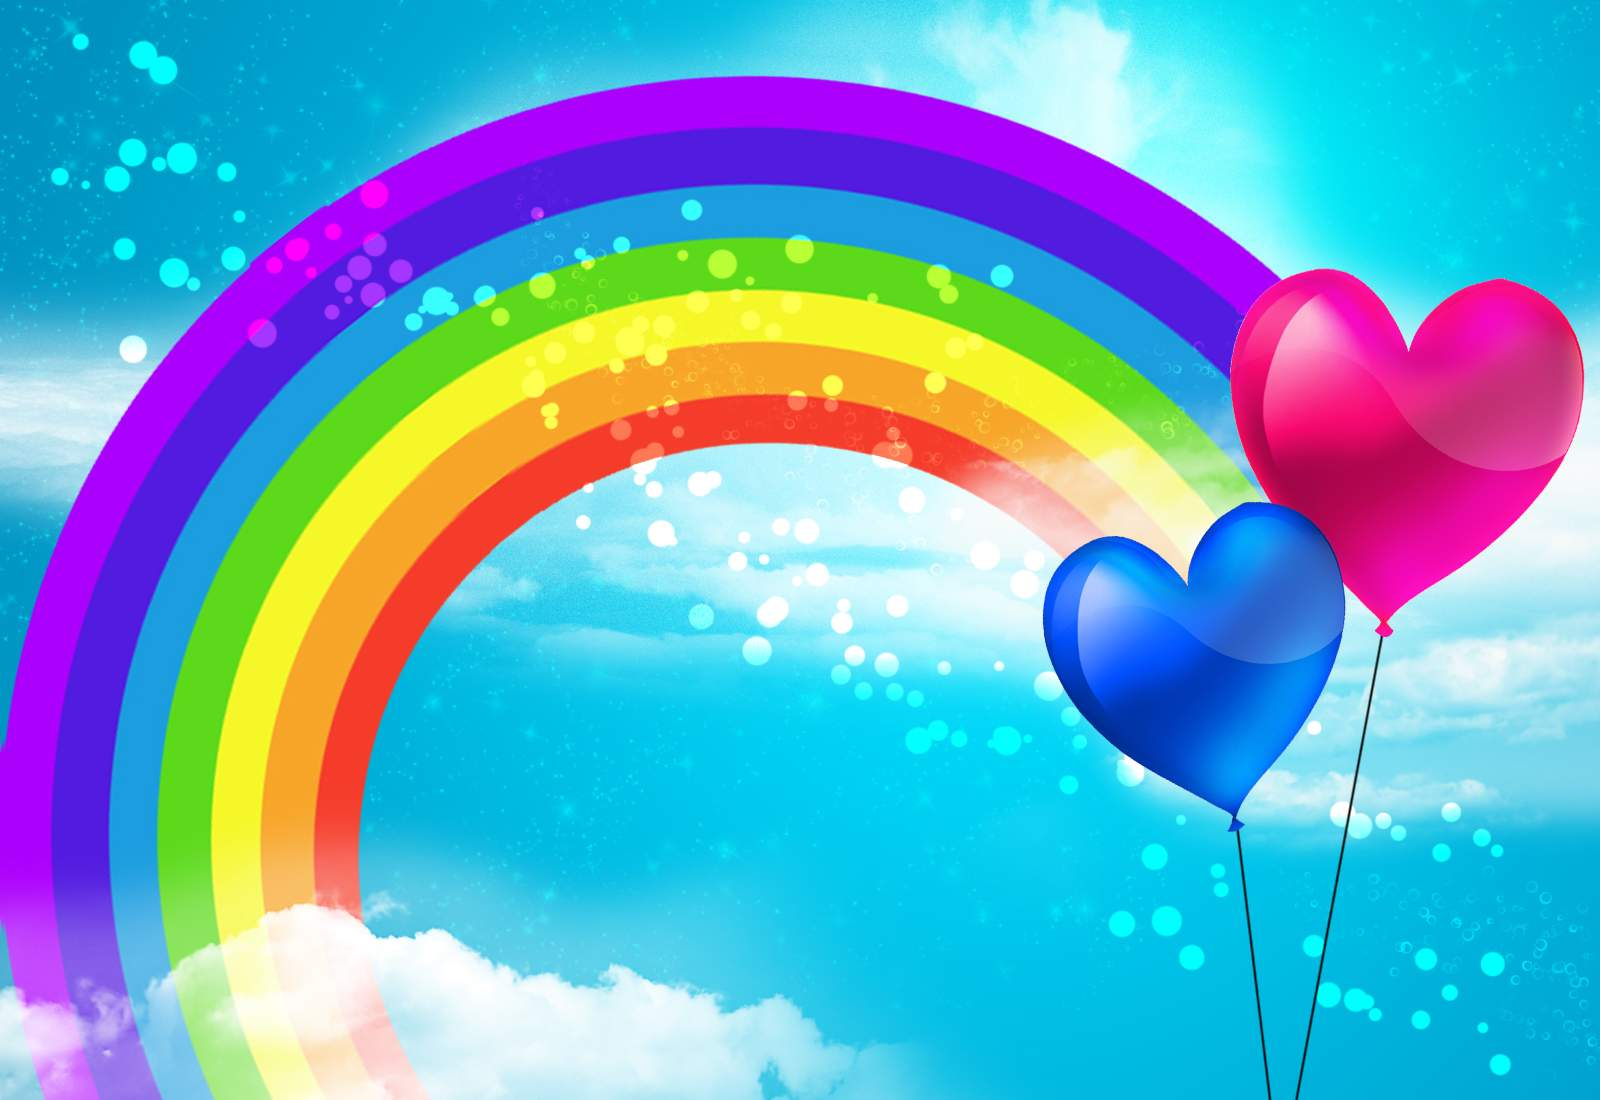 Rainbow Wallpaper Baloons